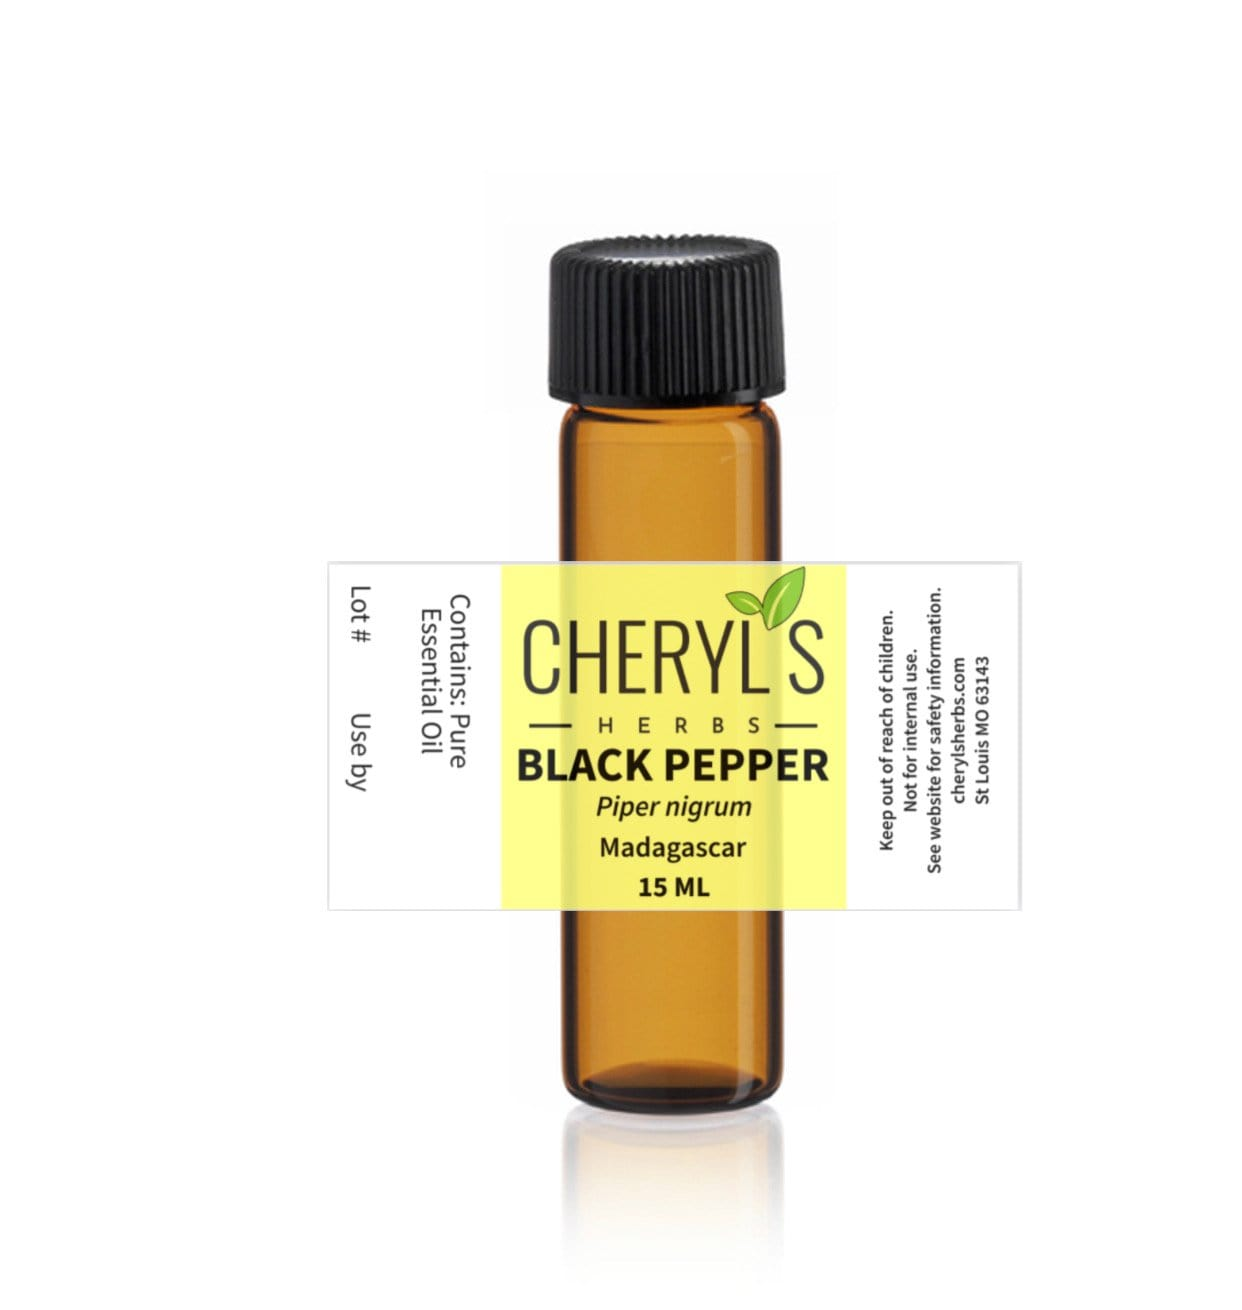 BLACK PEPPER ESSENTIAL OIL - Cheryls Herbs